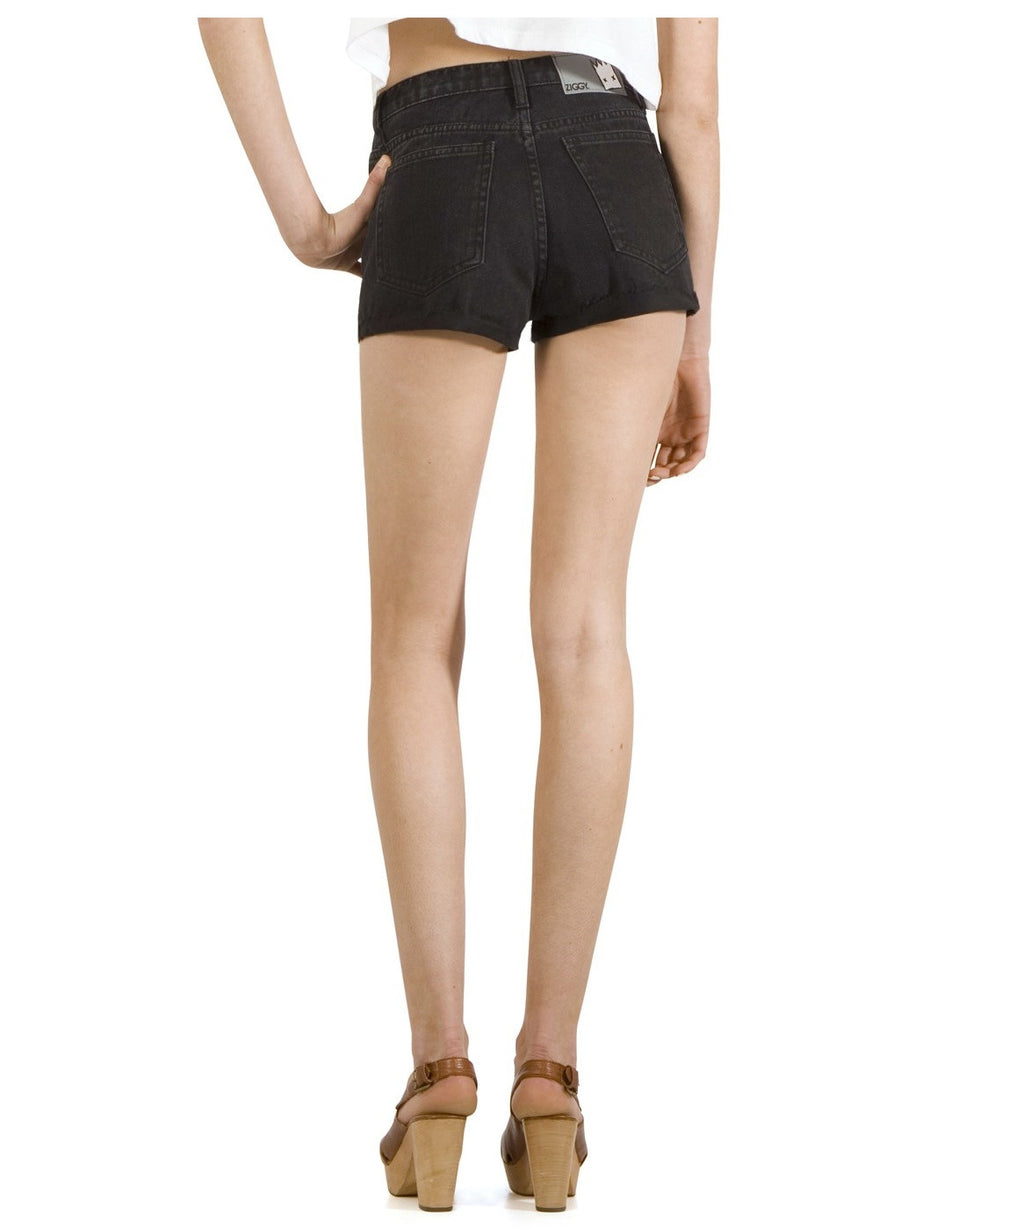 ZIGGY Denim - Rib Warmer Shorts - Black